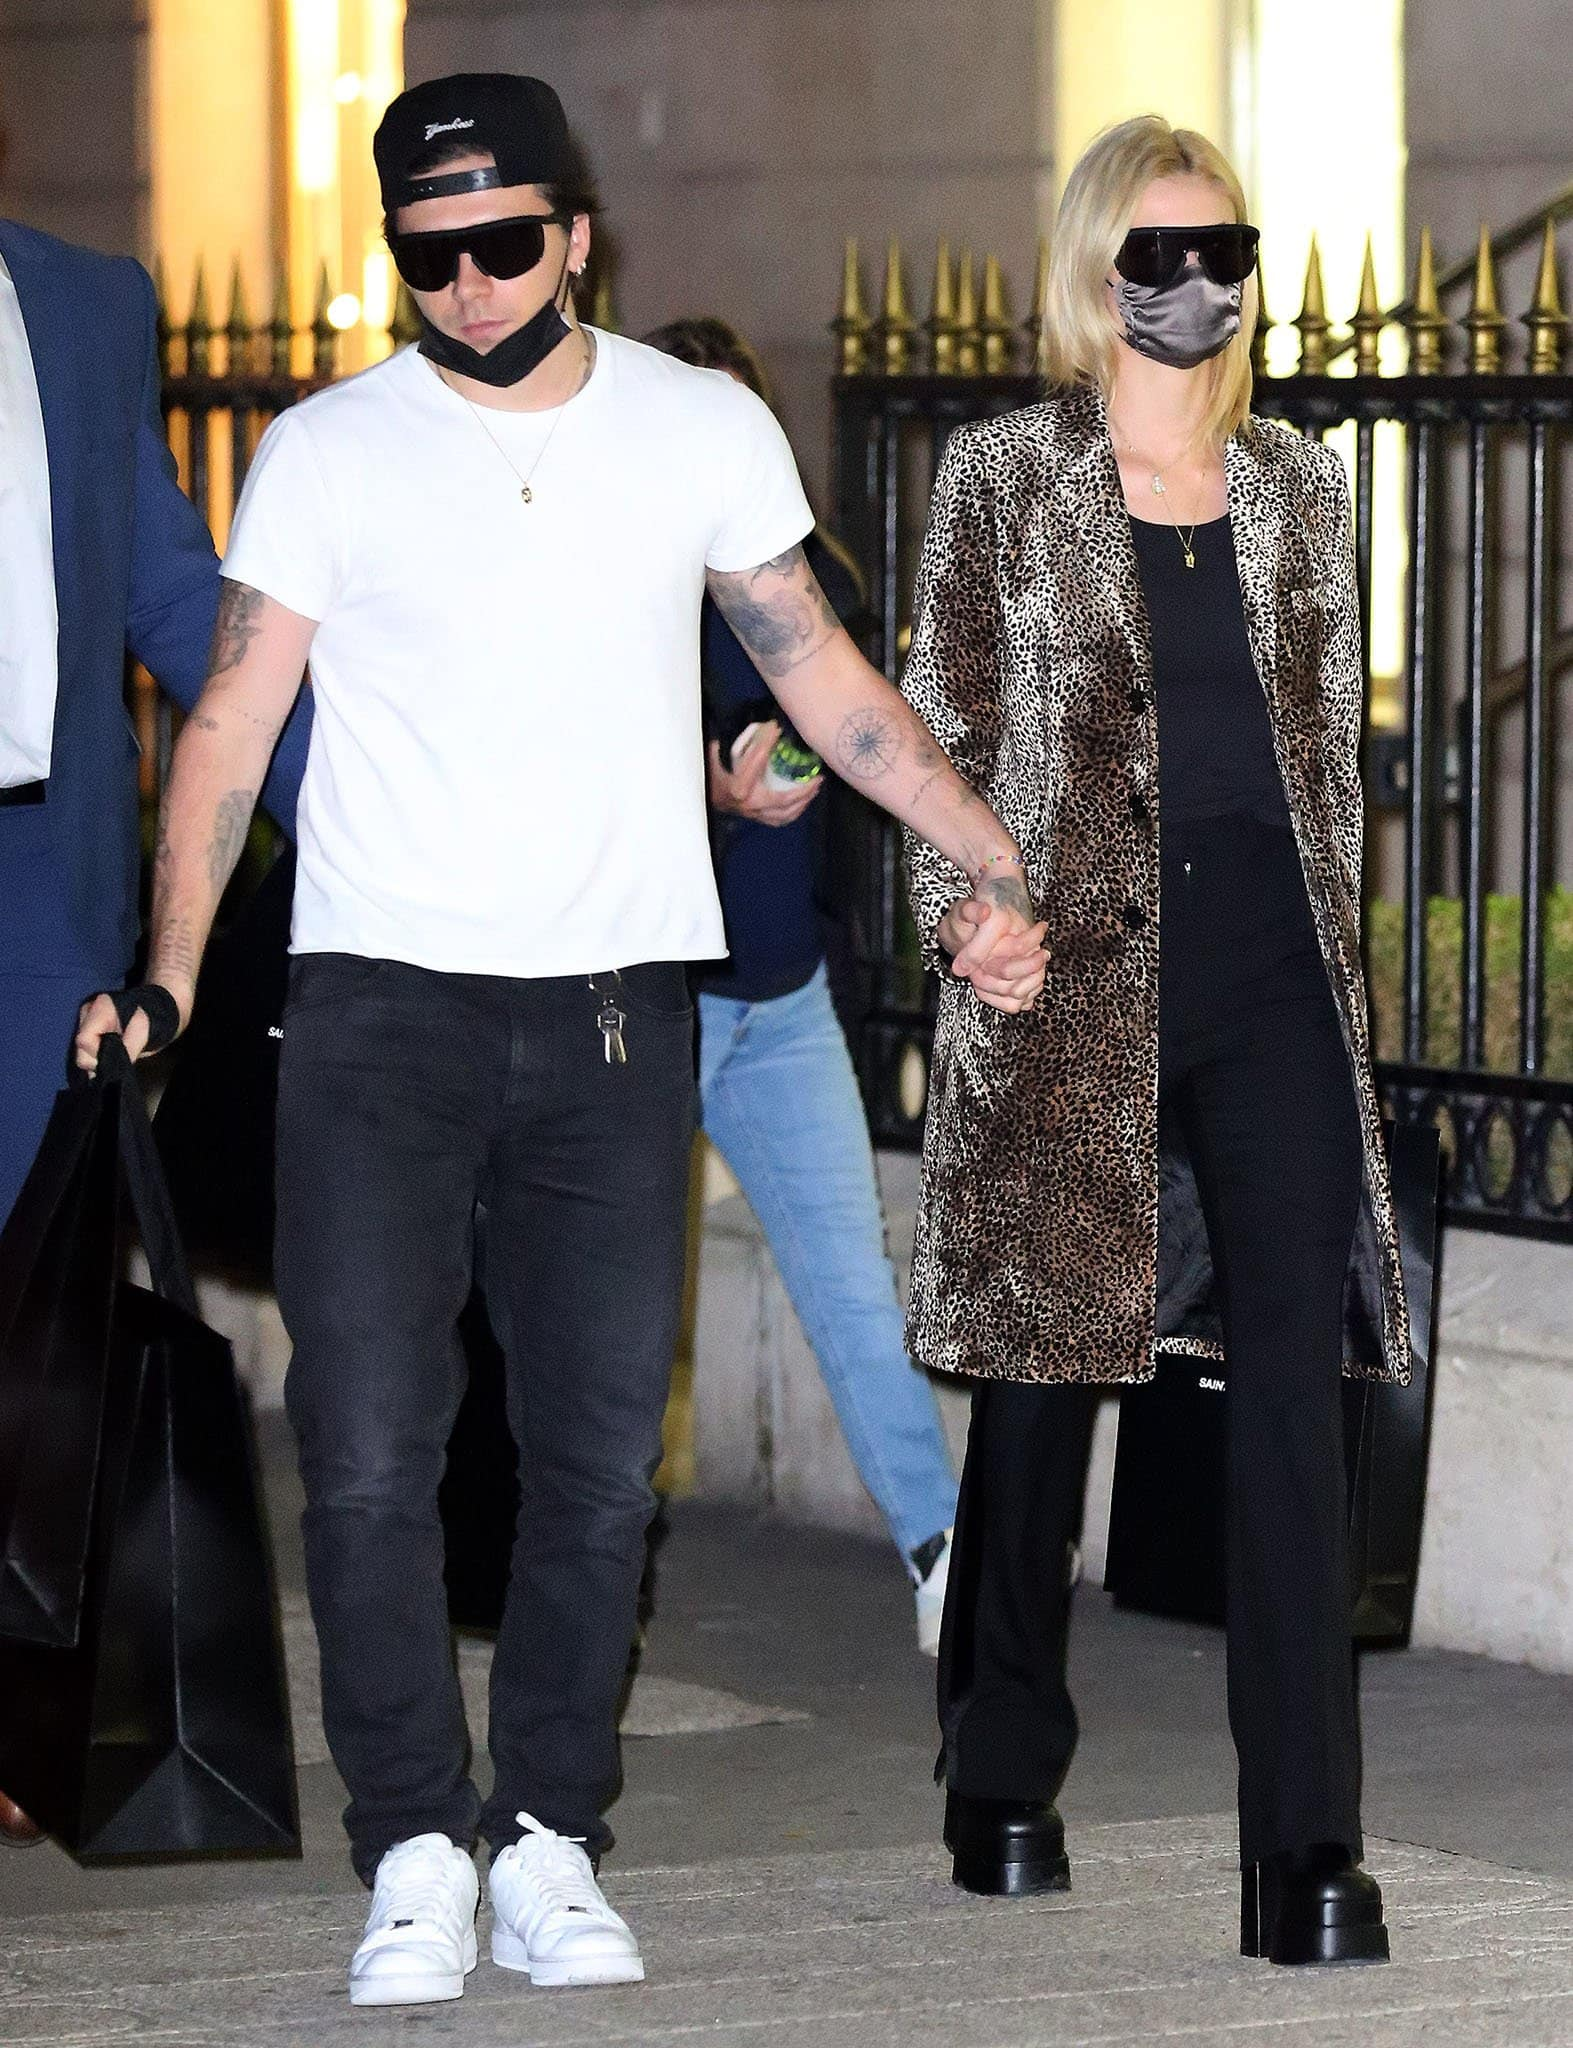 Brooklyn Beckham and Nicola Peltz at a YSL store on Avenue Montaigne in Paris on October 4, 2021